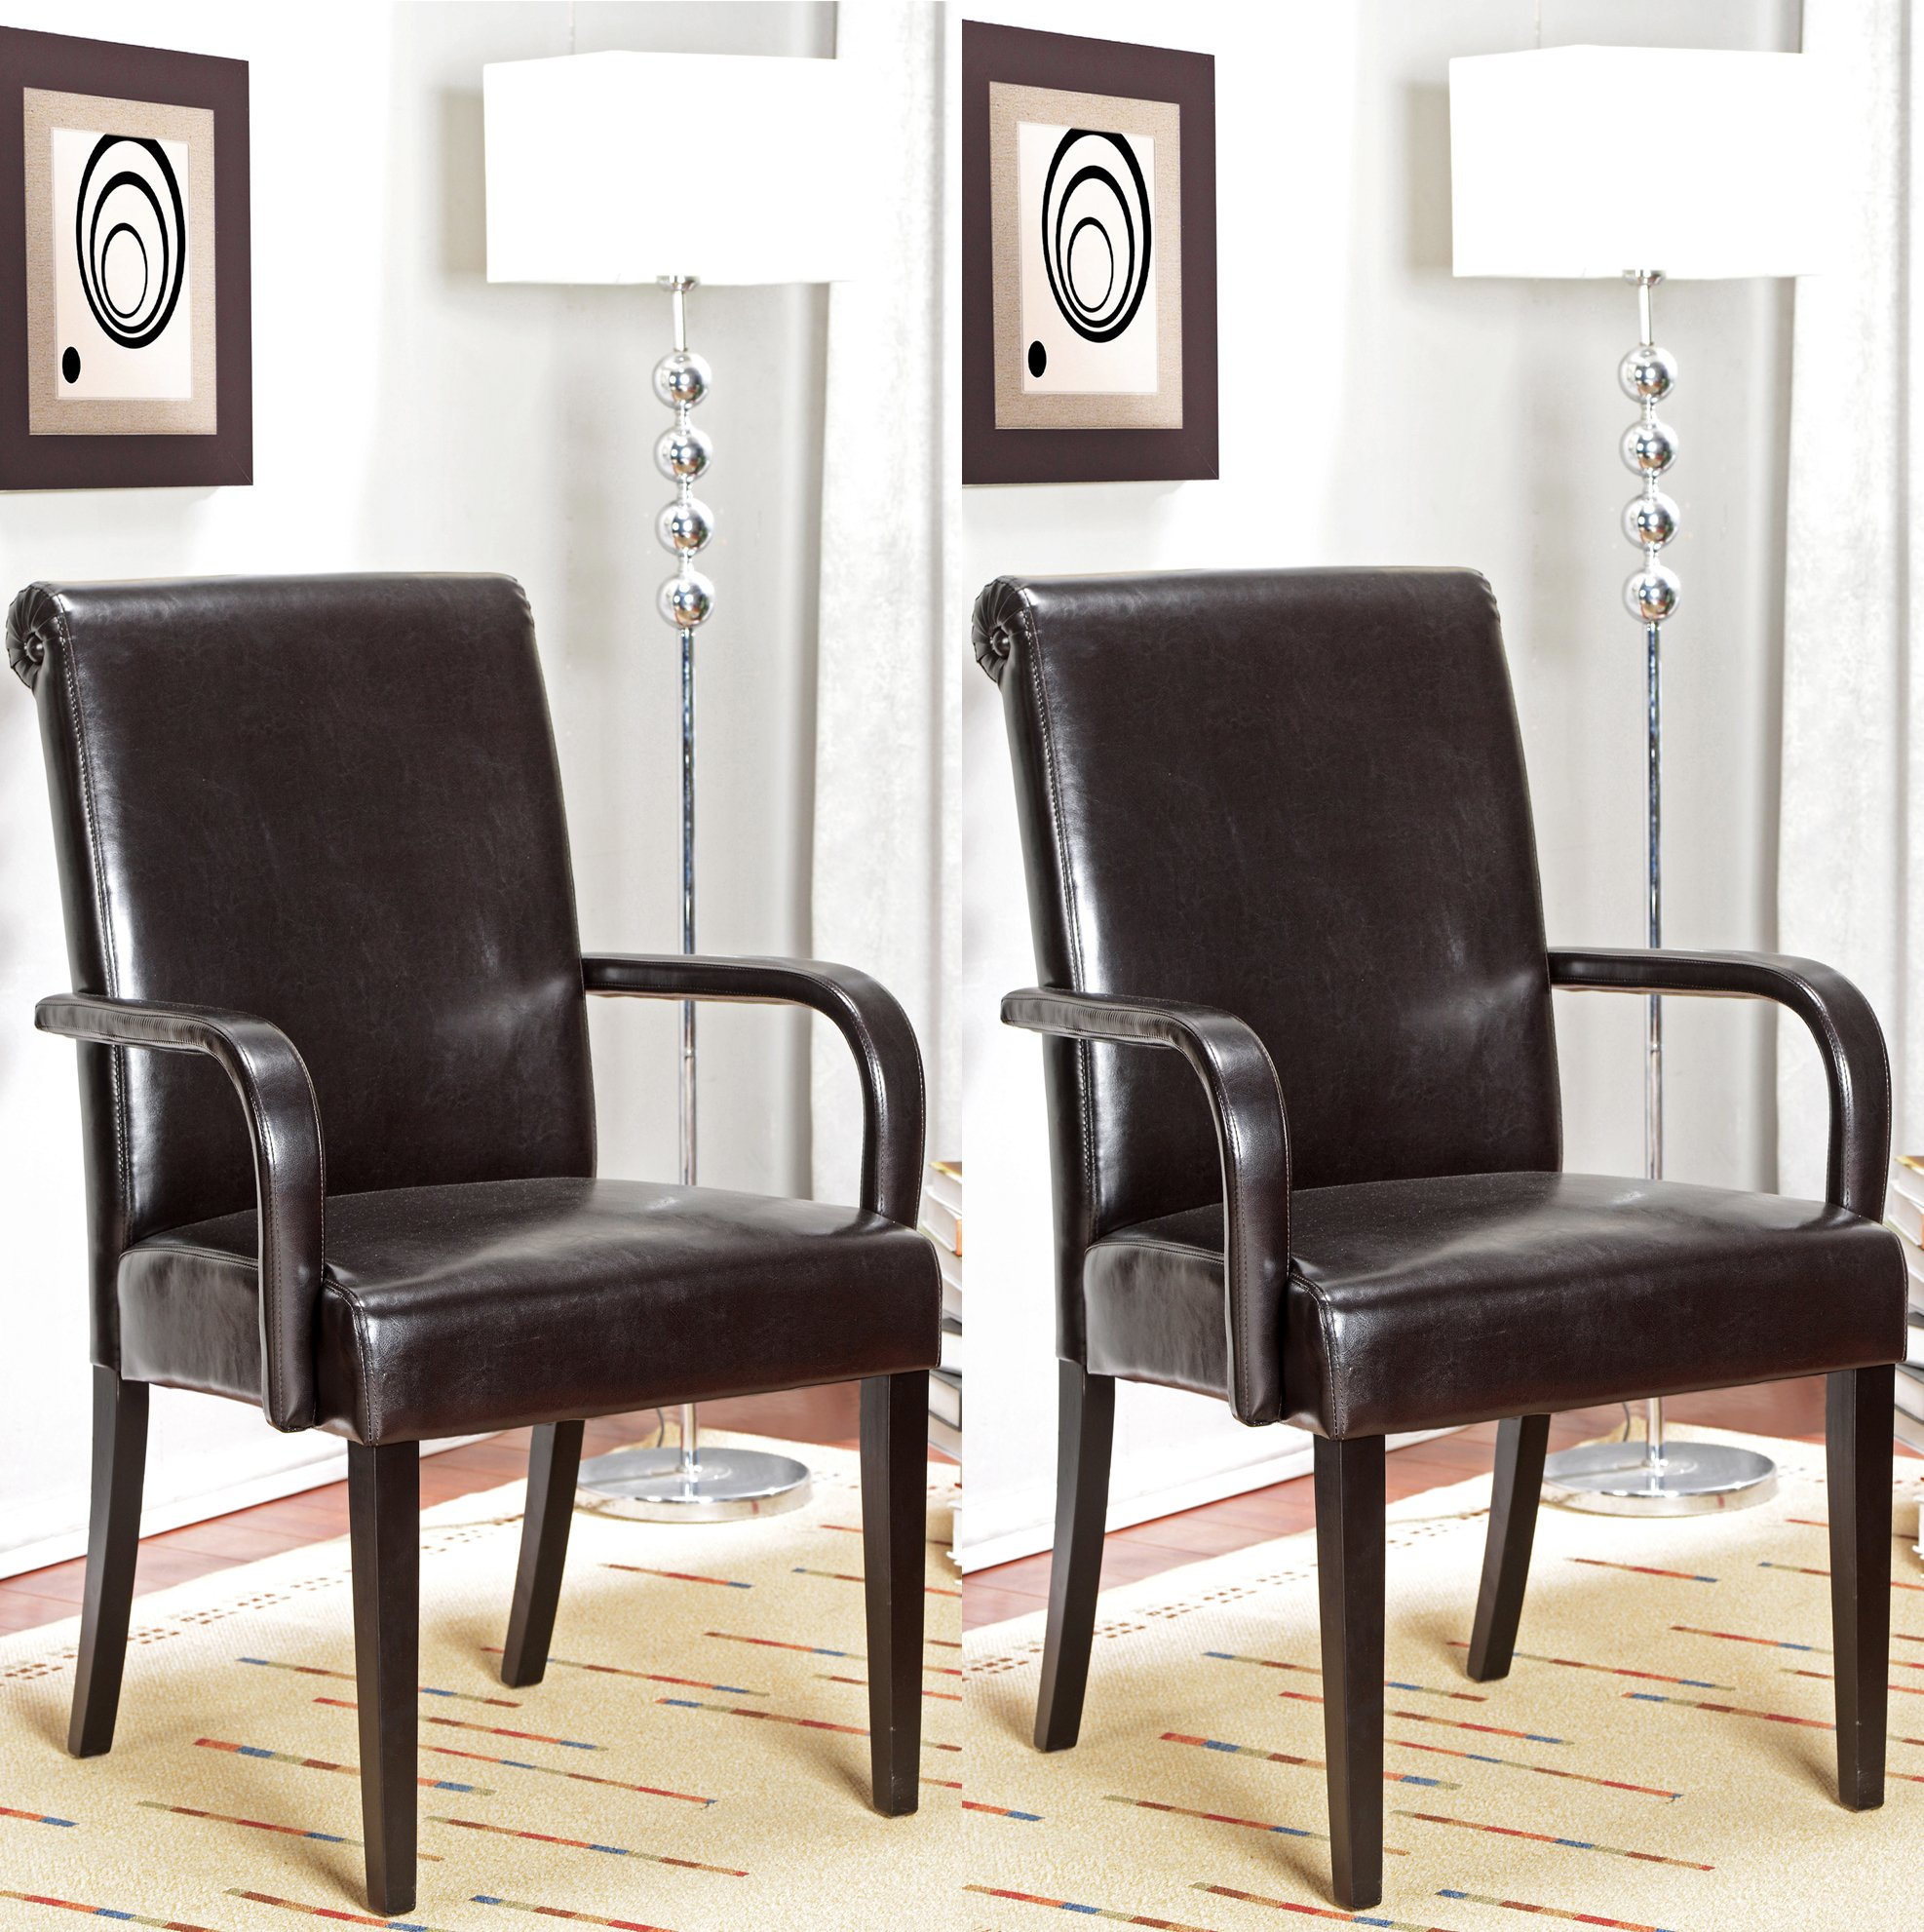 King 39 S Brand Set Of 2 Espresso Parson Chairs With Arms And Solid Wood Legs